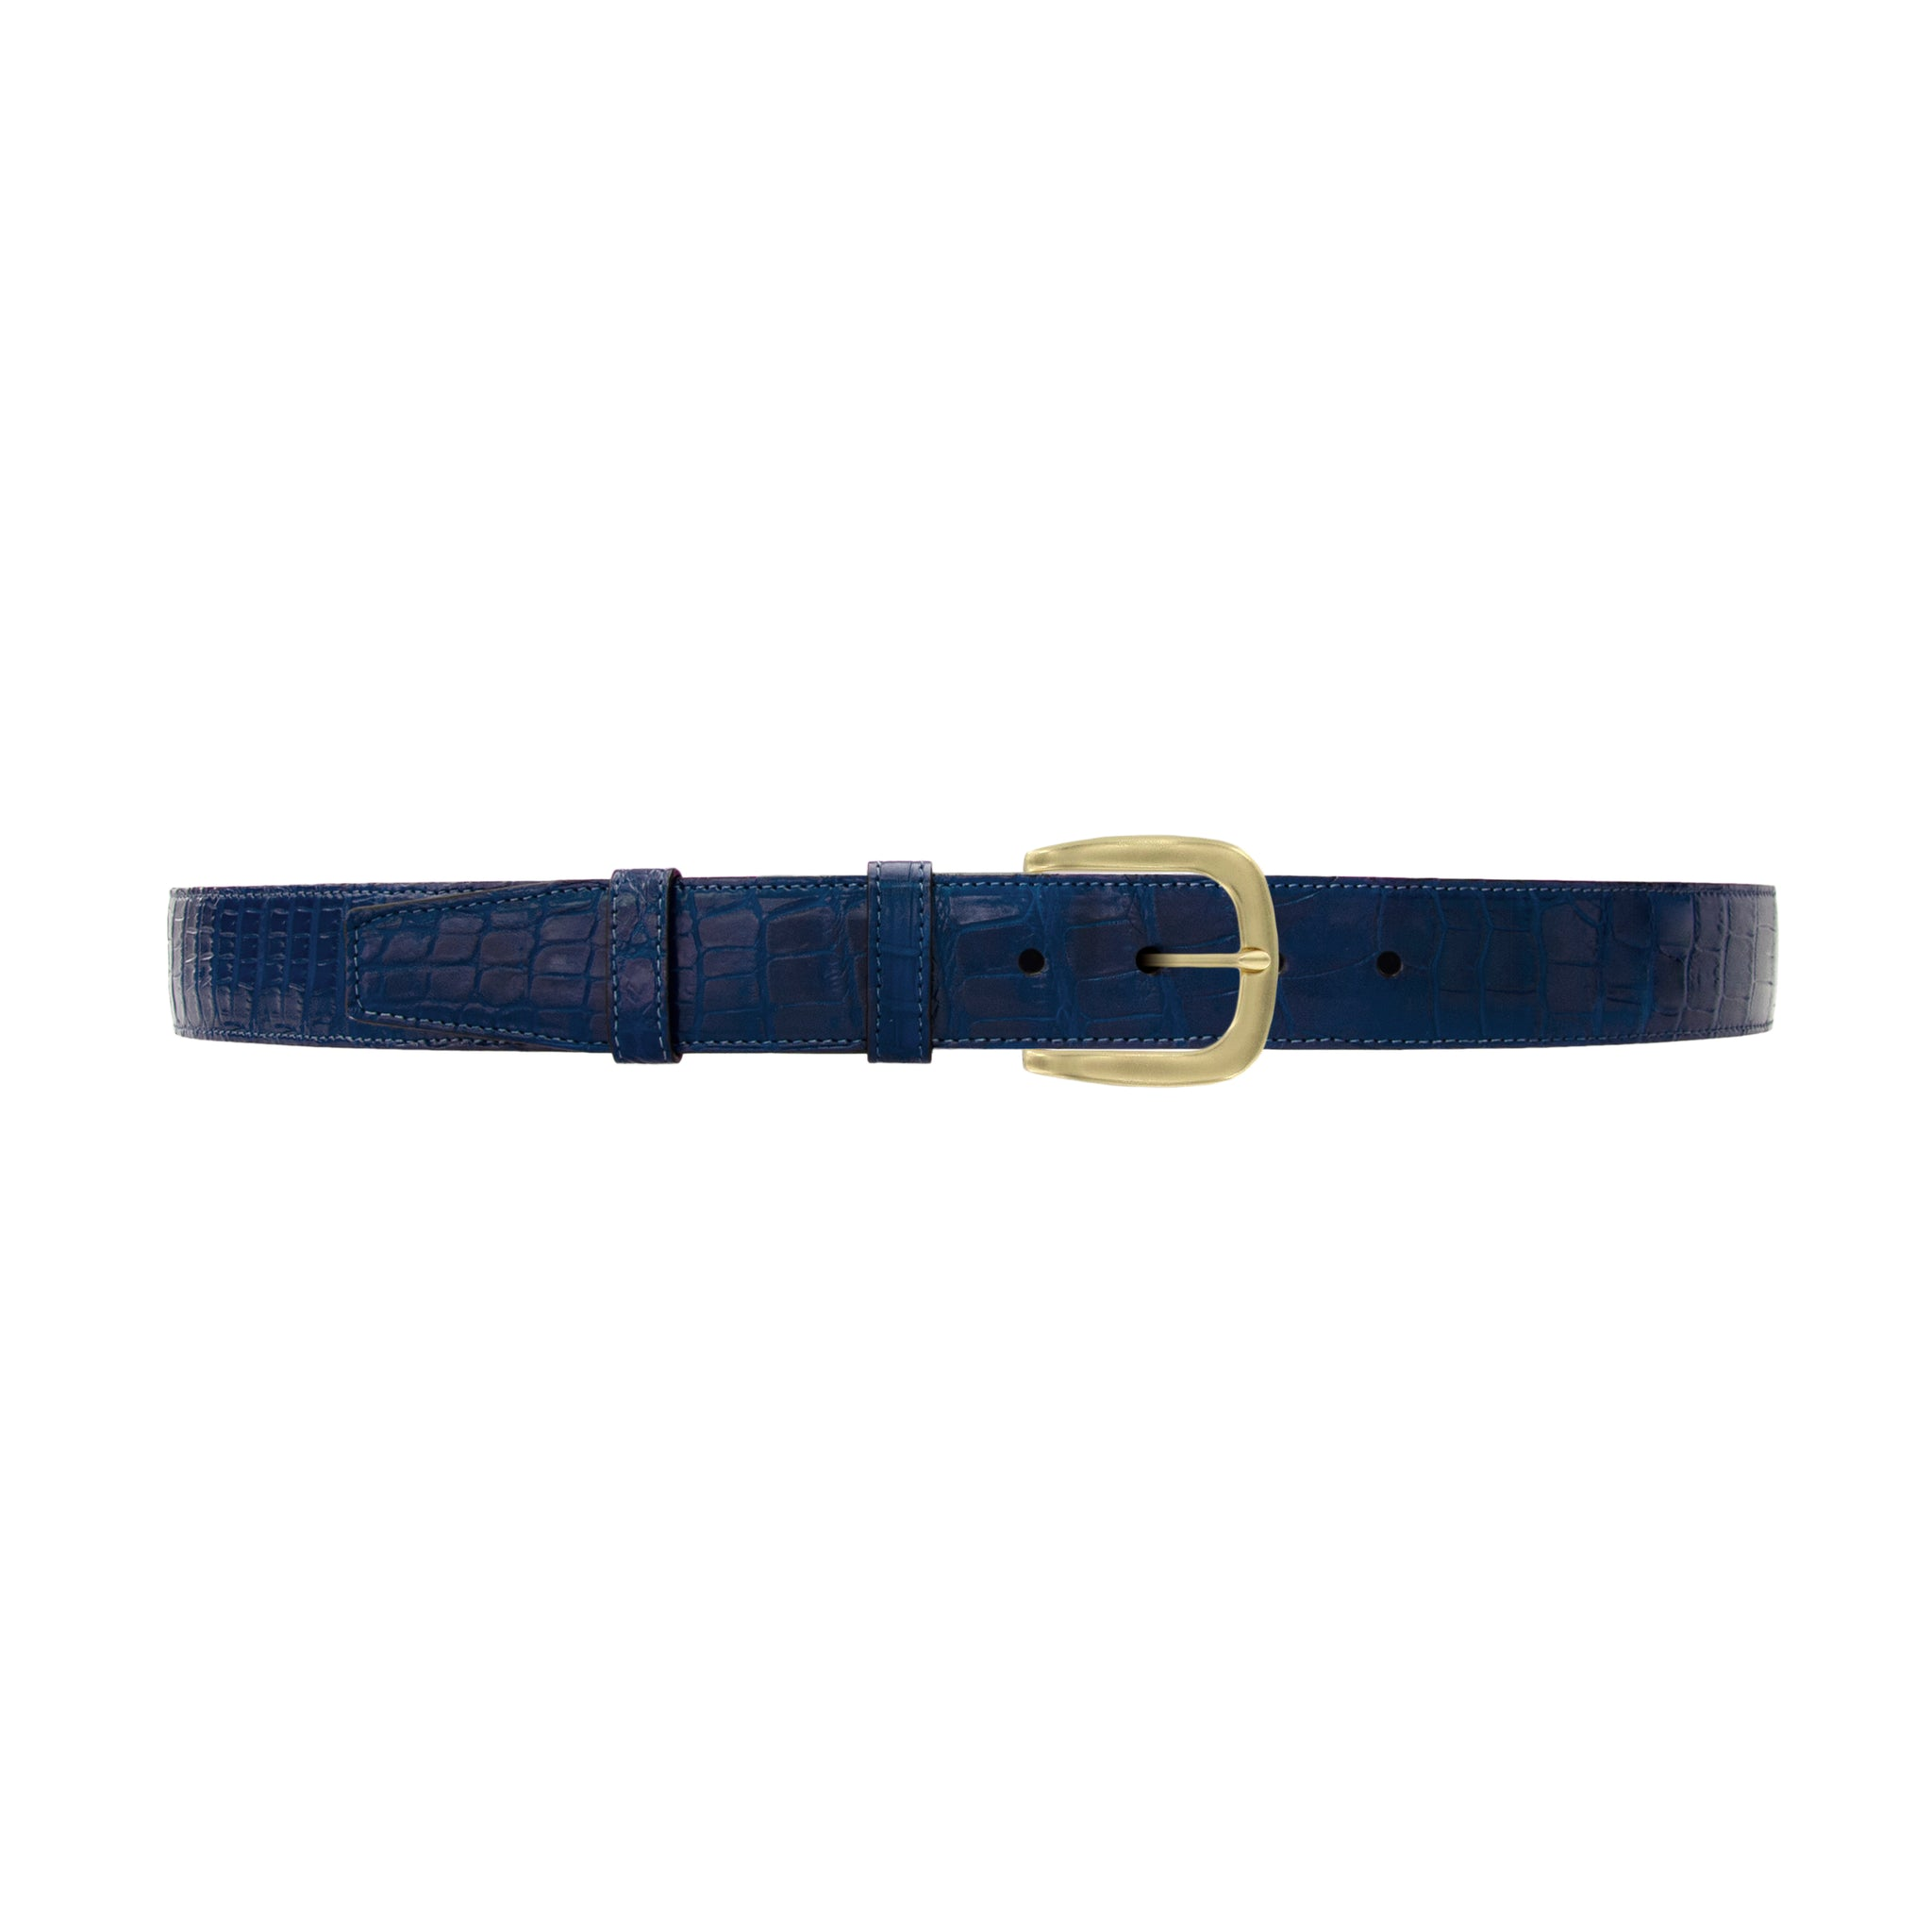 "1 1/2"" Royal Seasonal Belt with Oxford Cocktail Buckle in Brass"